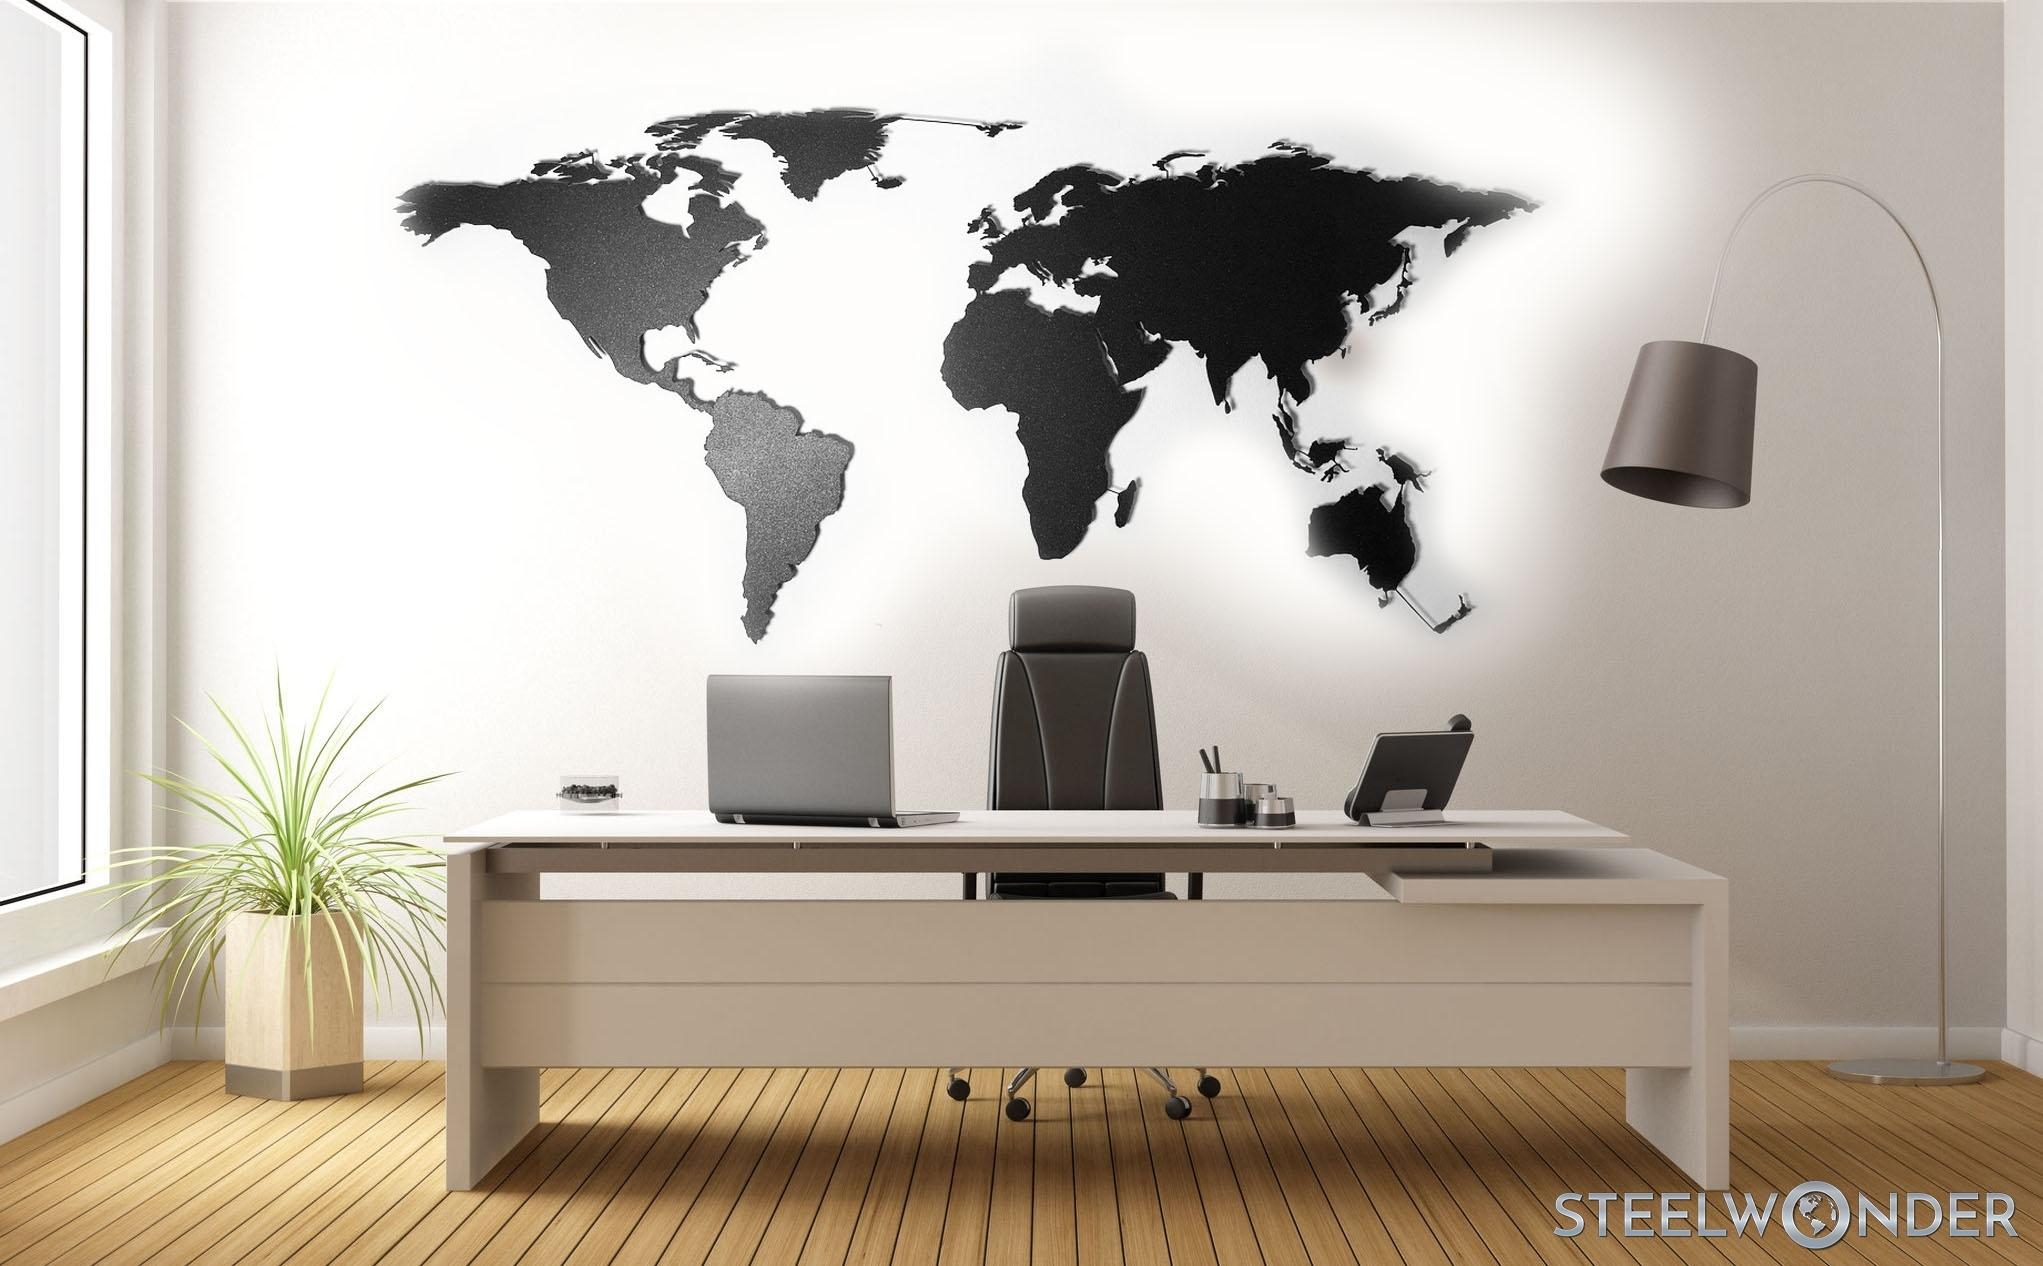 39086273 - minimalist office with desk and world map on wall - 3d rendering